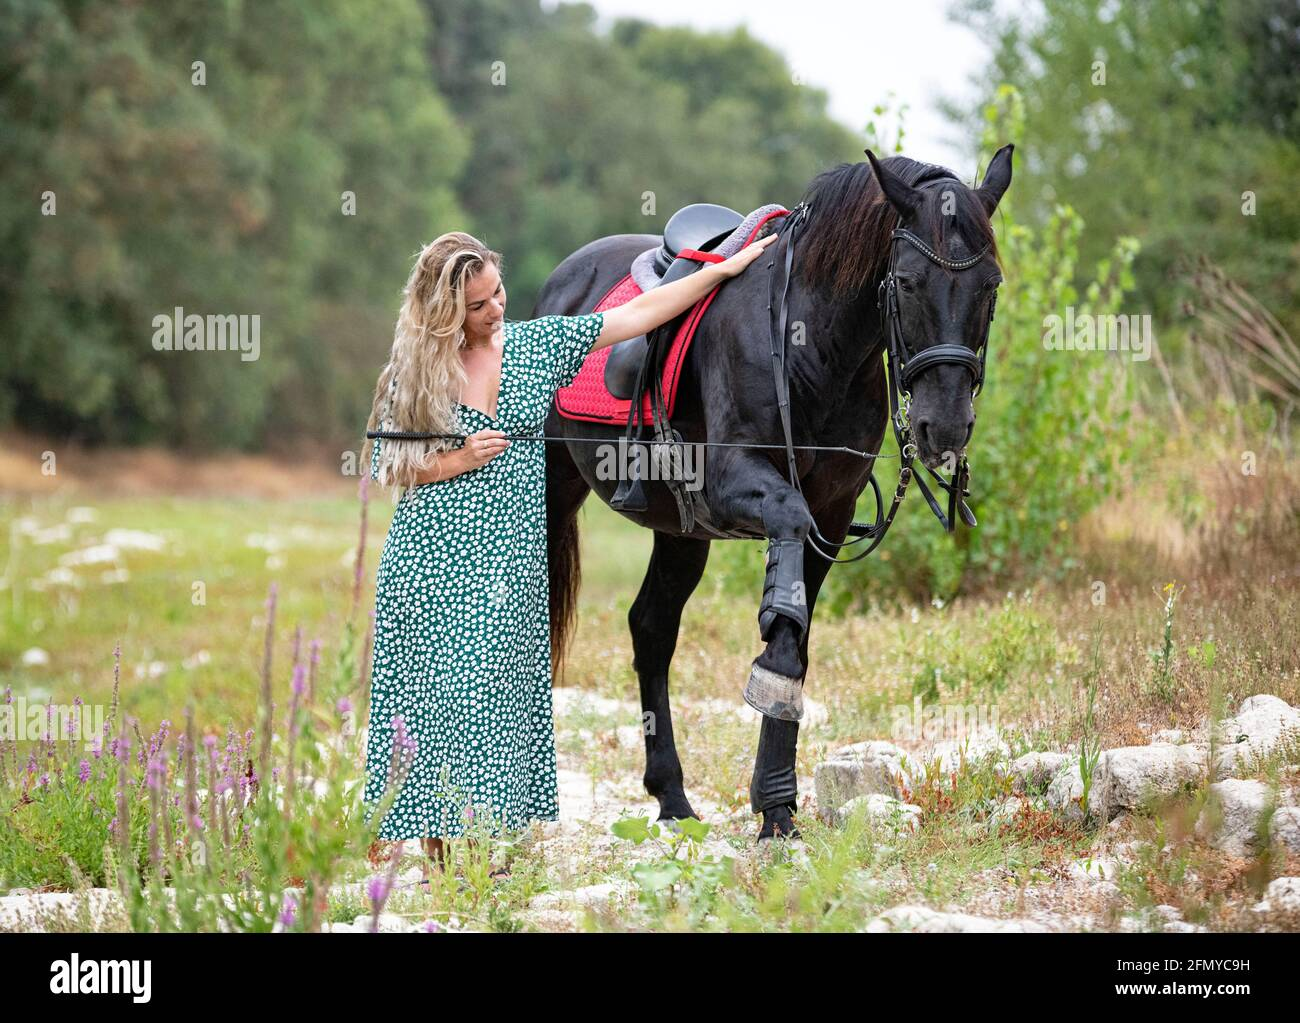 riding girl are walking with her black horse Stock Photo